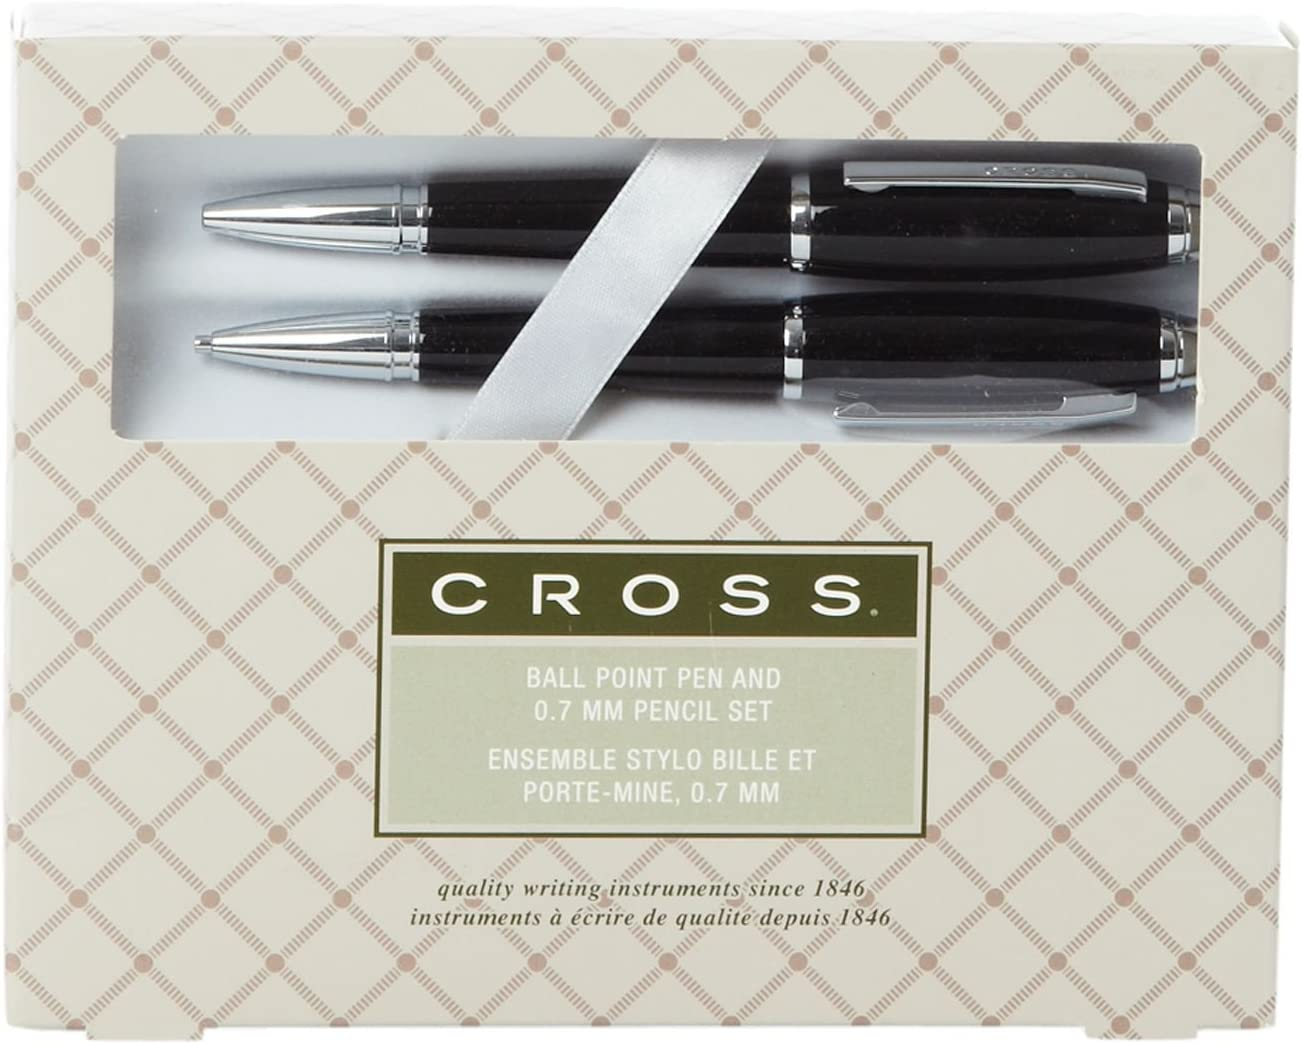 Polished Chrome New In Box Cross Avitar Ballpoint Pen /& .7mm Pencil Set